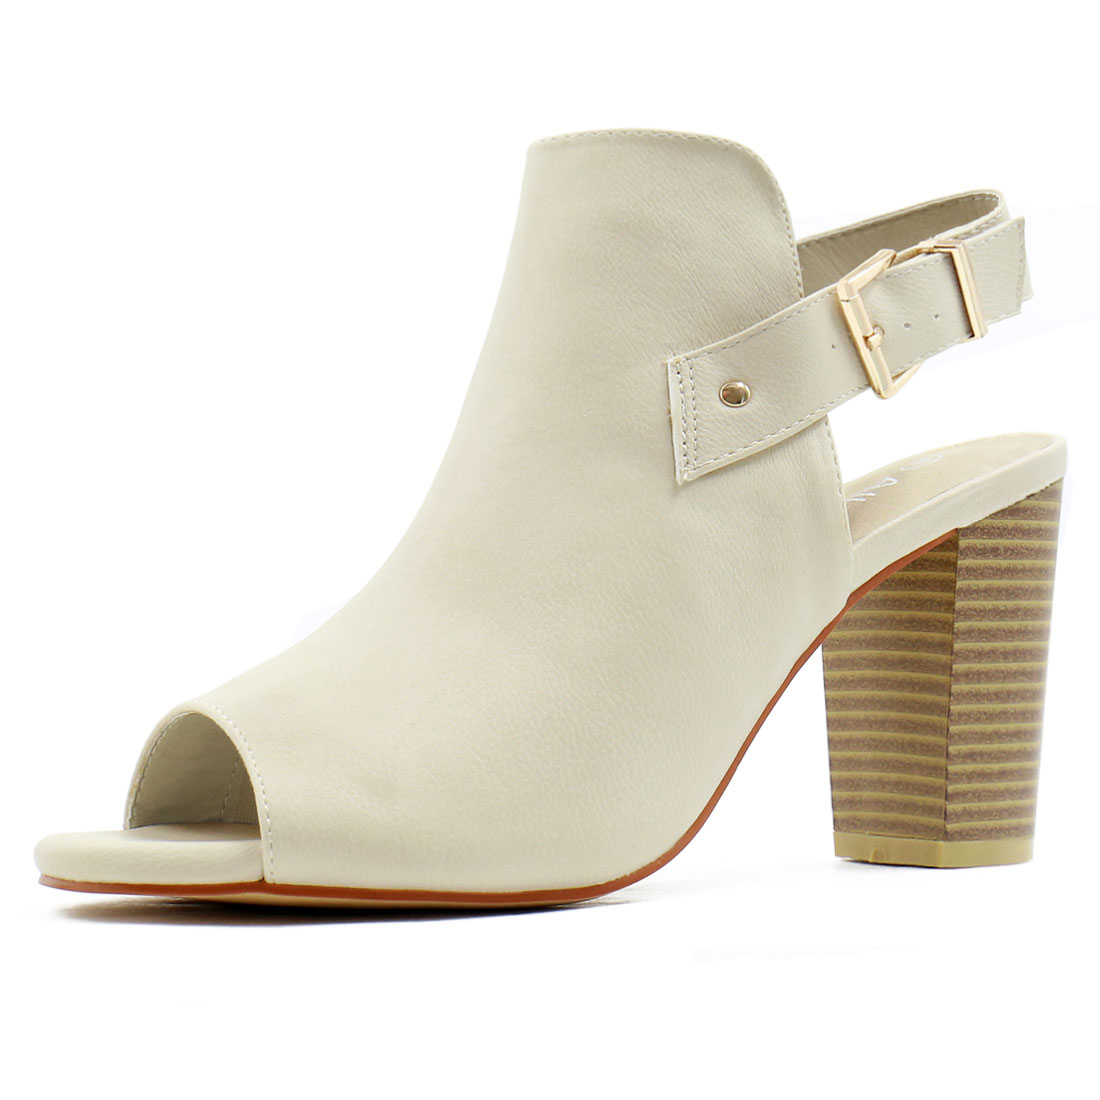 Women Peep Toe Slip On Stacked Heel Slingback Sandals Ivory US 8